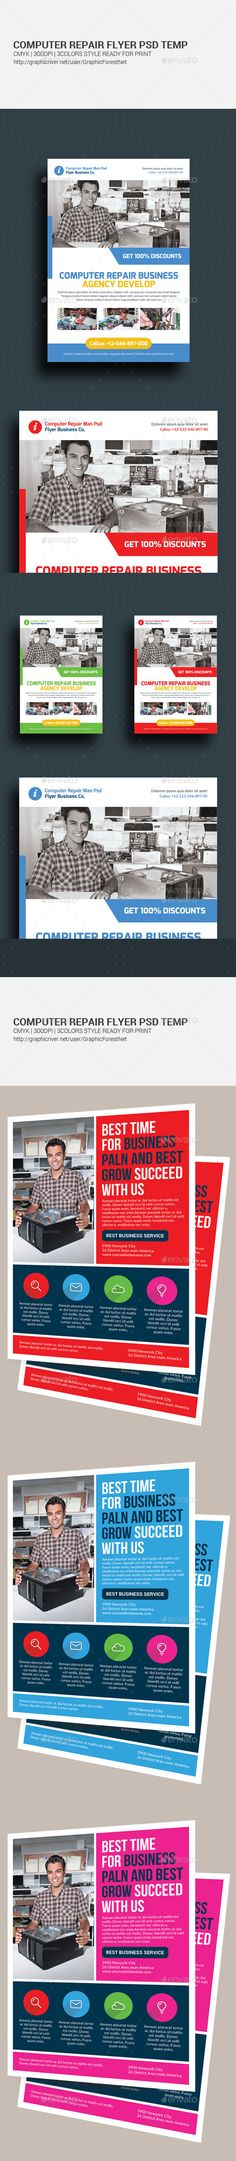 Computer Repair Flyers Bundle Template #Design Download: Http